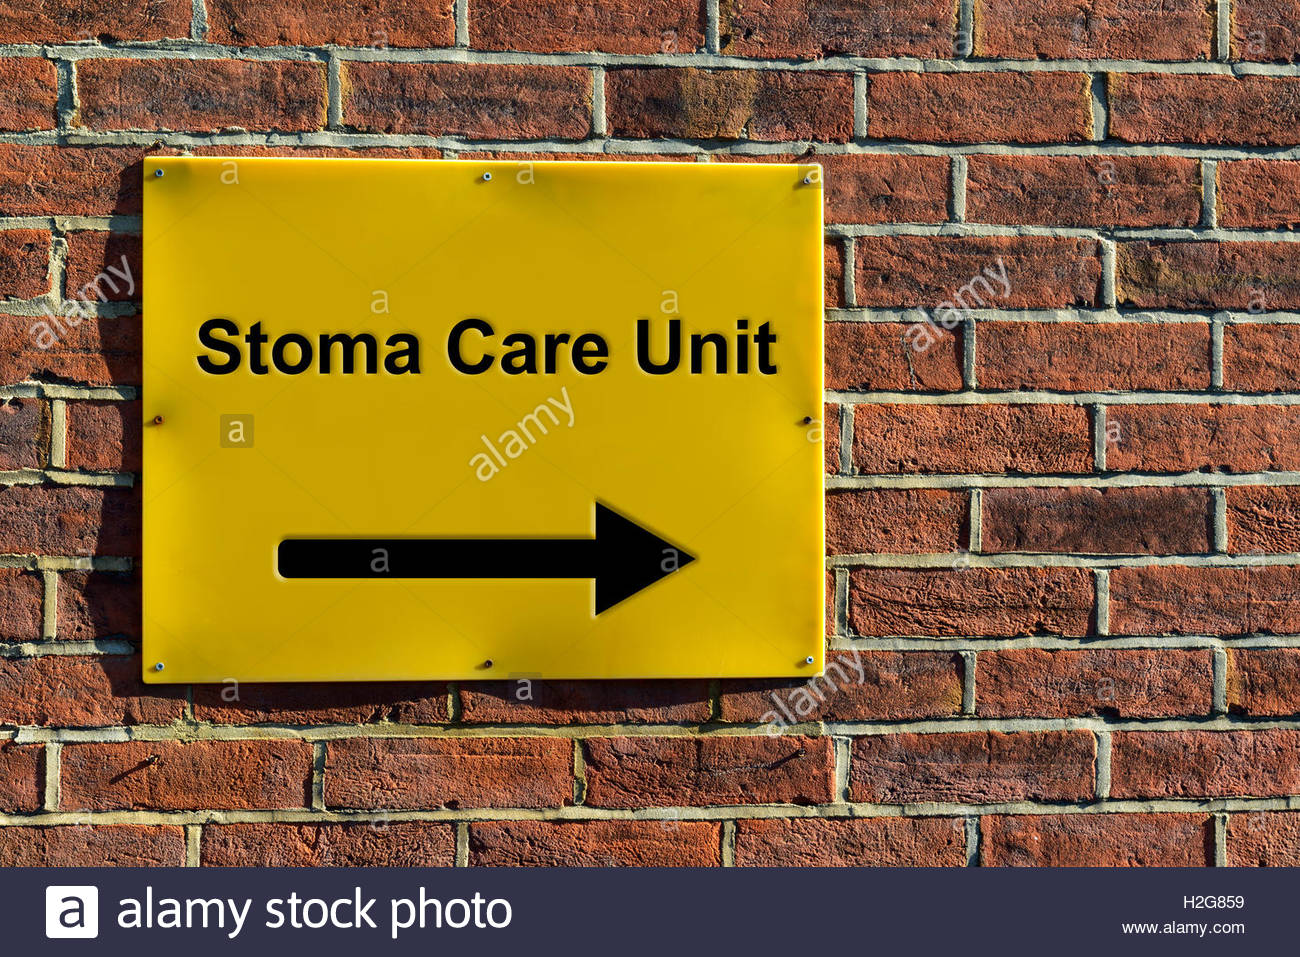 Stoma Care Unit, NHS wall mounted direction sign. - Stock Image